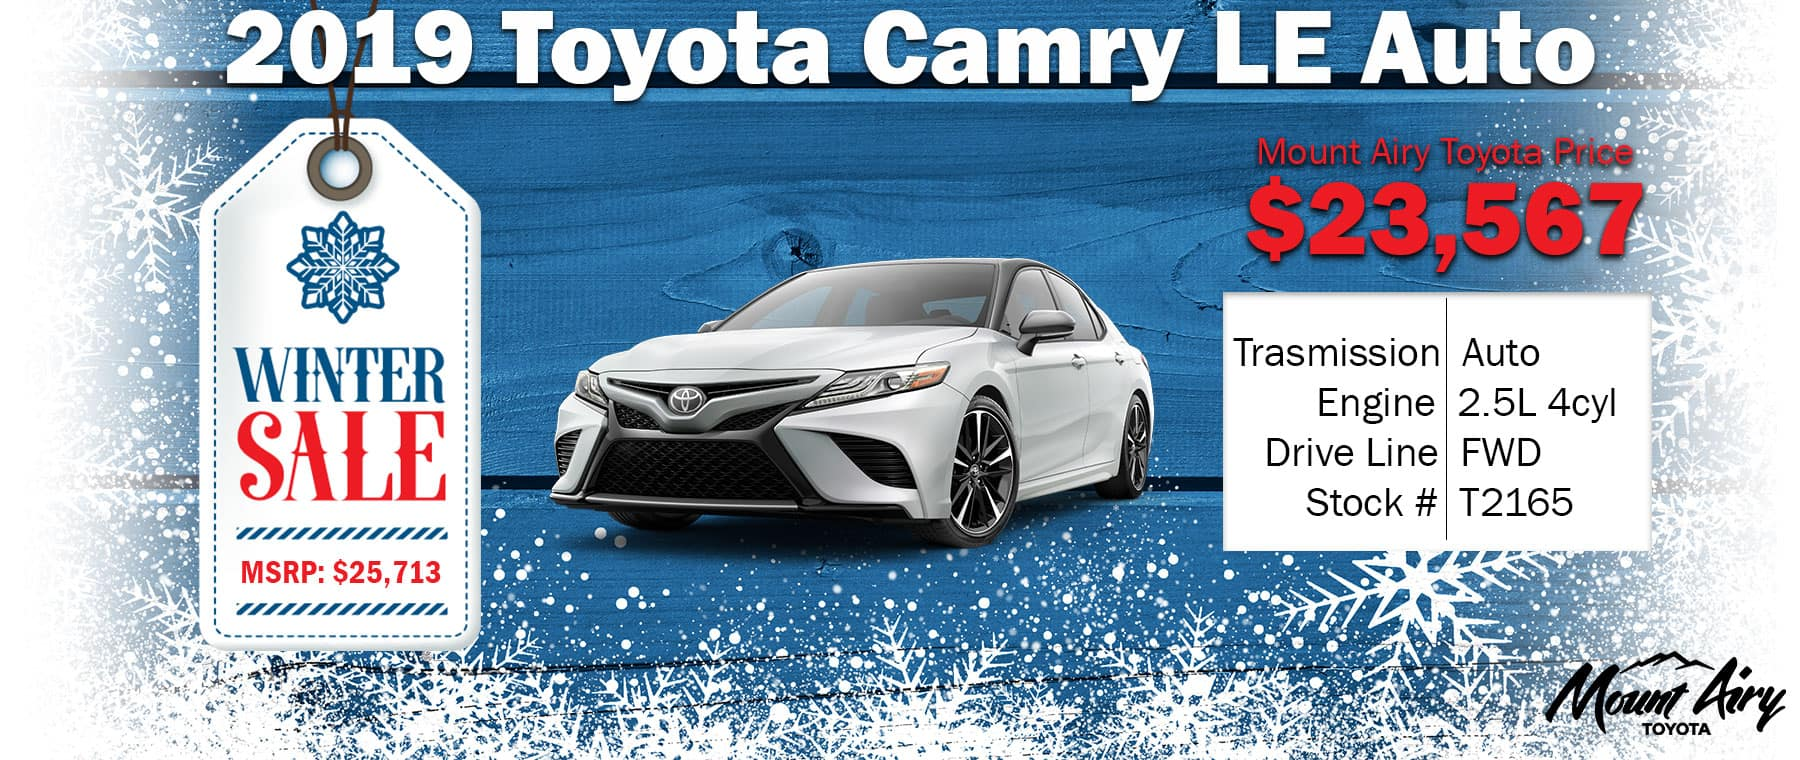 Best Toyota Camry Mount Airy